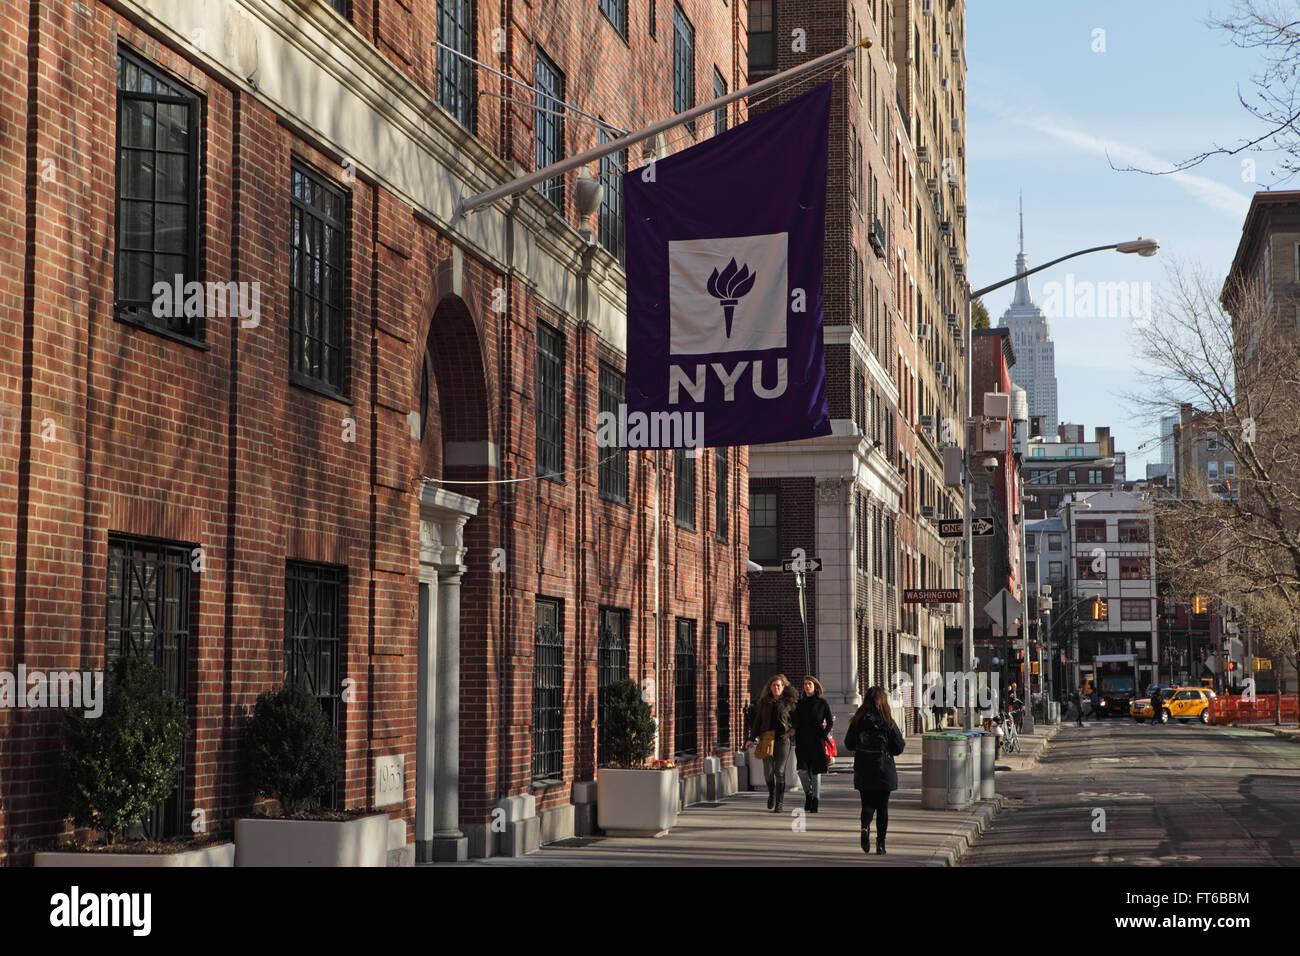 ... New York University Buildings With The Purple NYU Logo Flag Hanging  Outside The Entrance   Stock